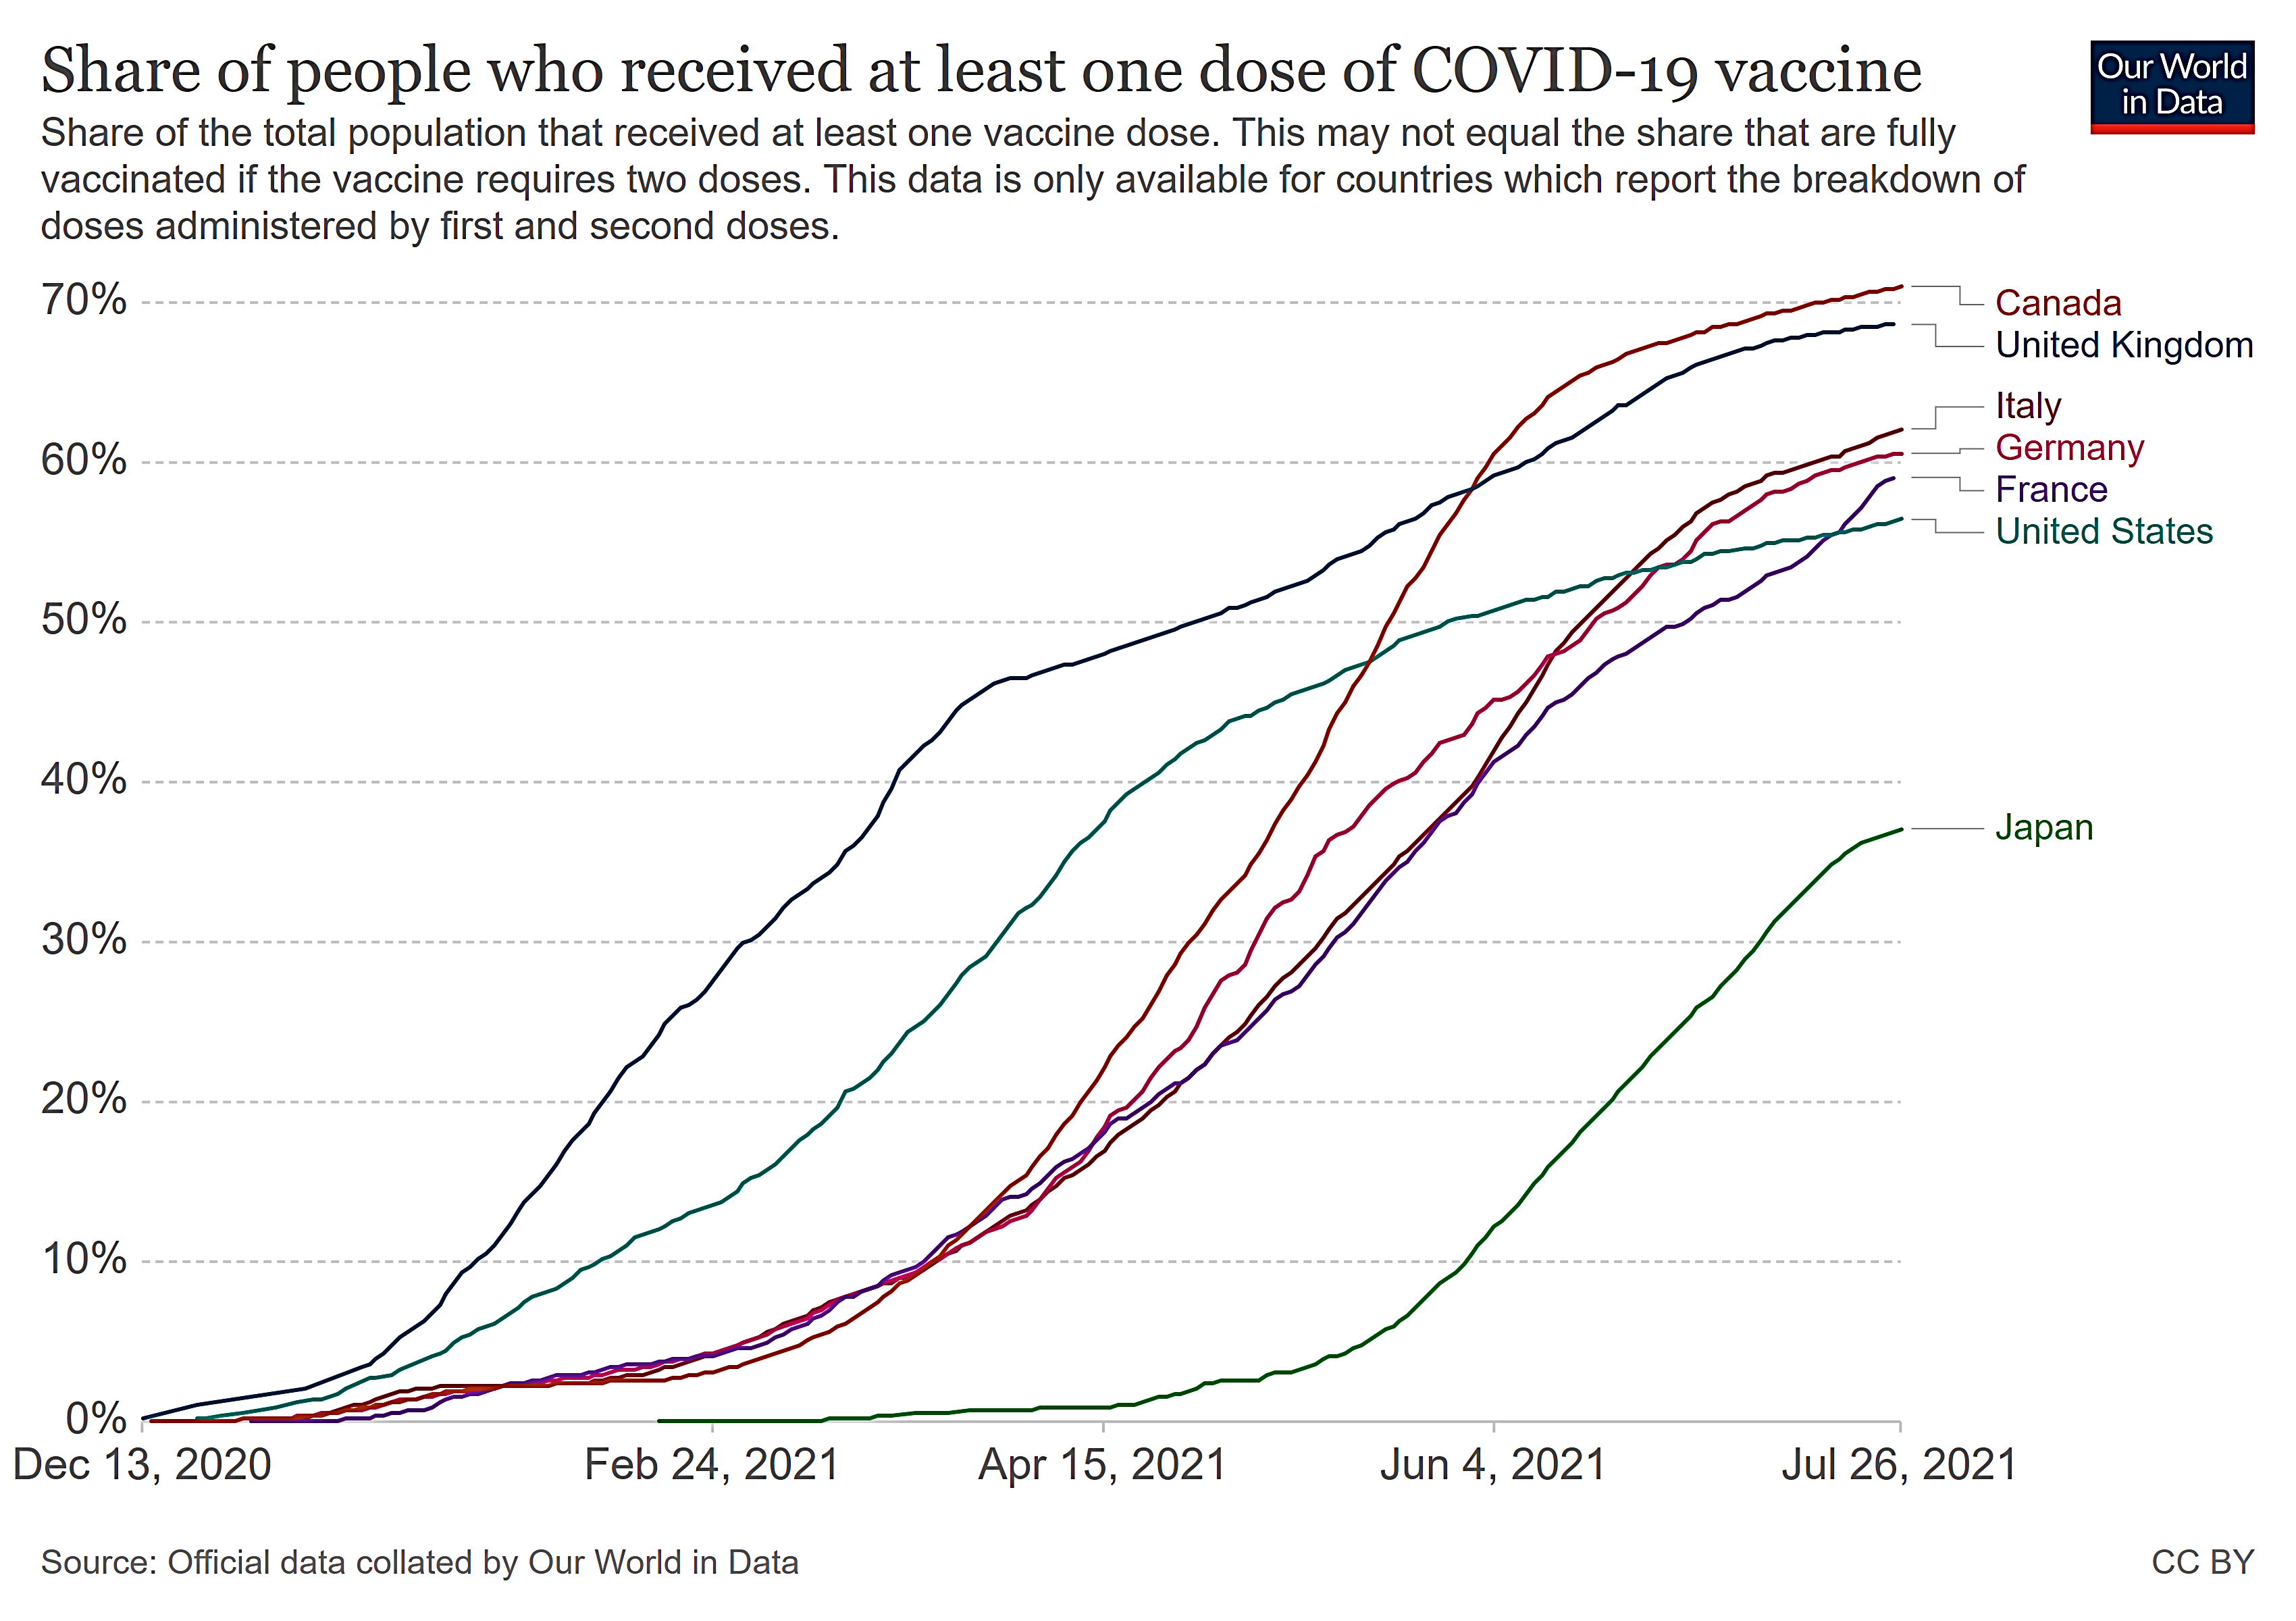 Graph-Canada leades G7 countries in COVID vaccination